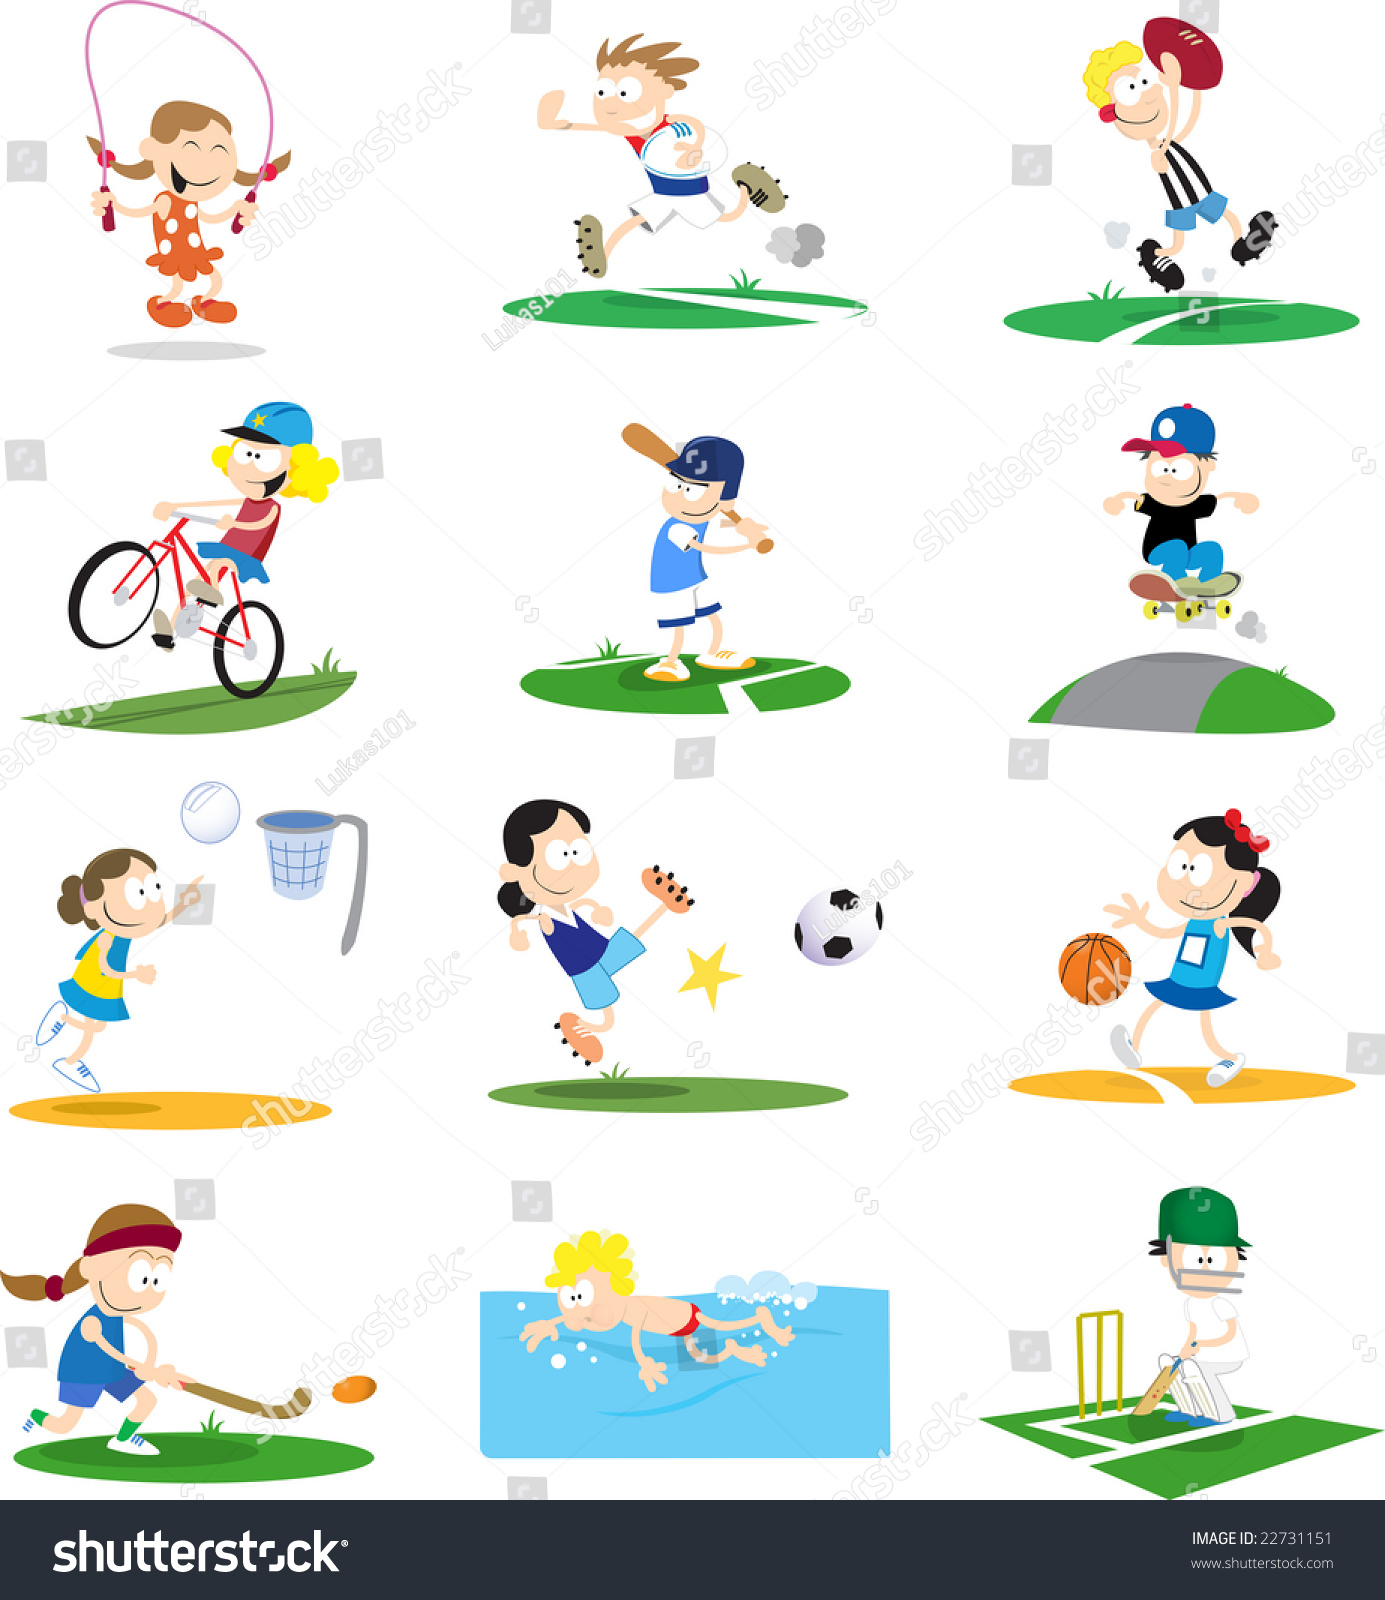 collection cartoonstyle vector illustrations kids playing stock